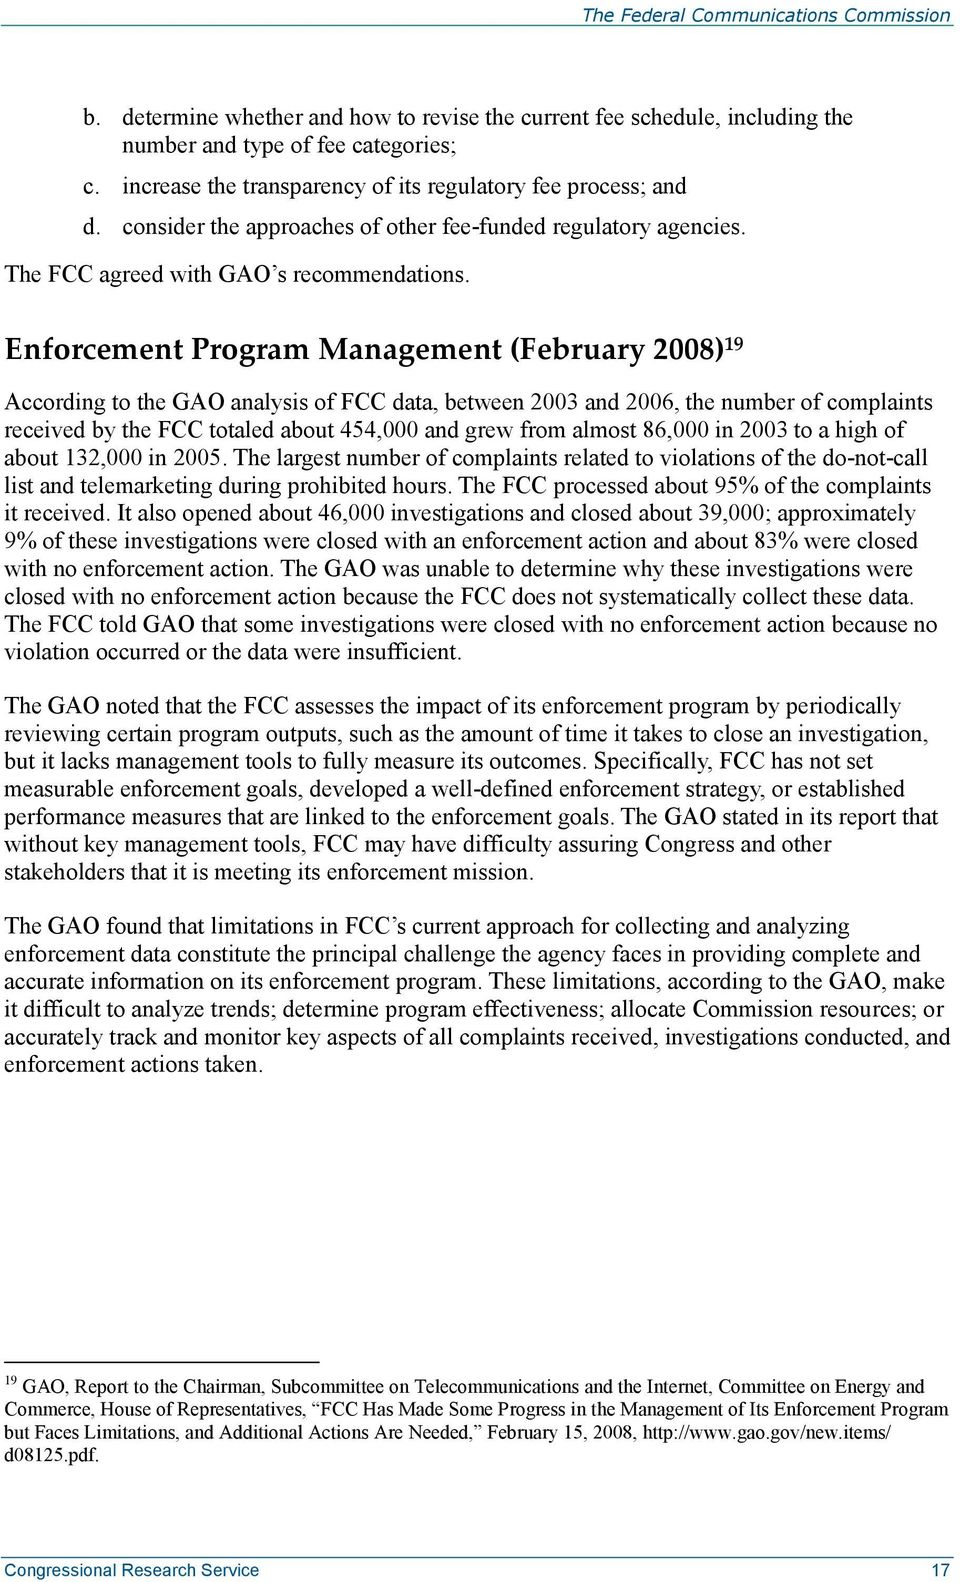 Enforcement Program Management (February 2008) 19 According to the GAO analysis of FCC data, between 2003 and 2006, the number of complaints received by the FCC totaled about 454,000 and grew from